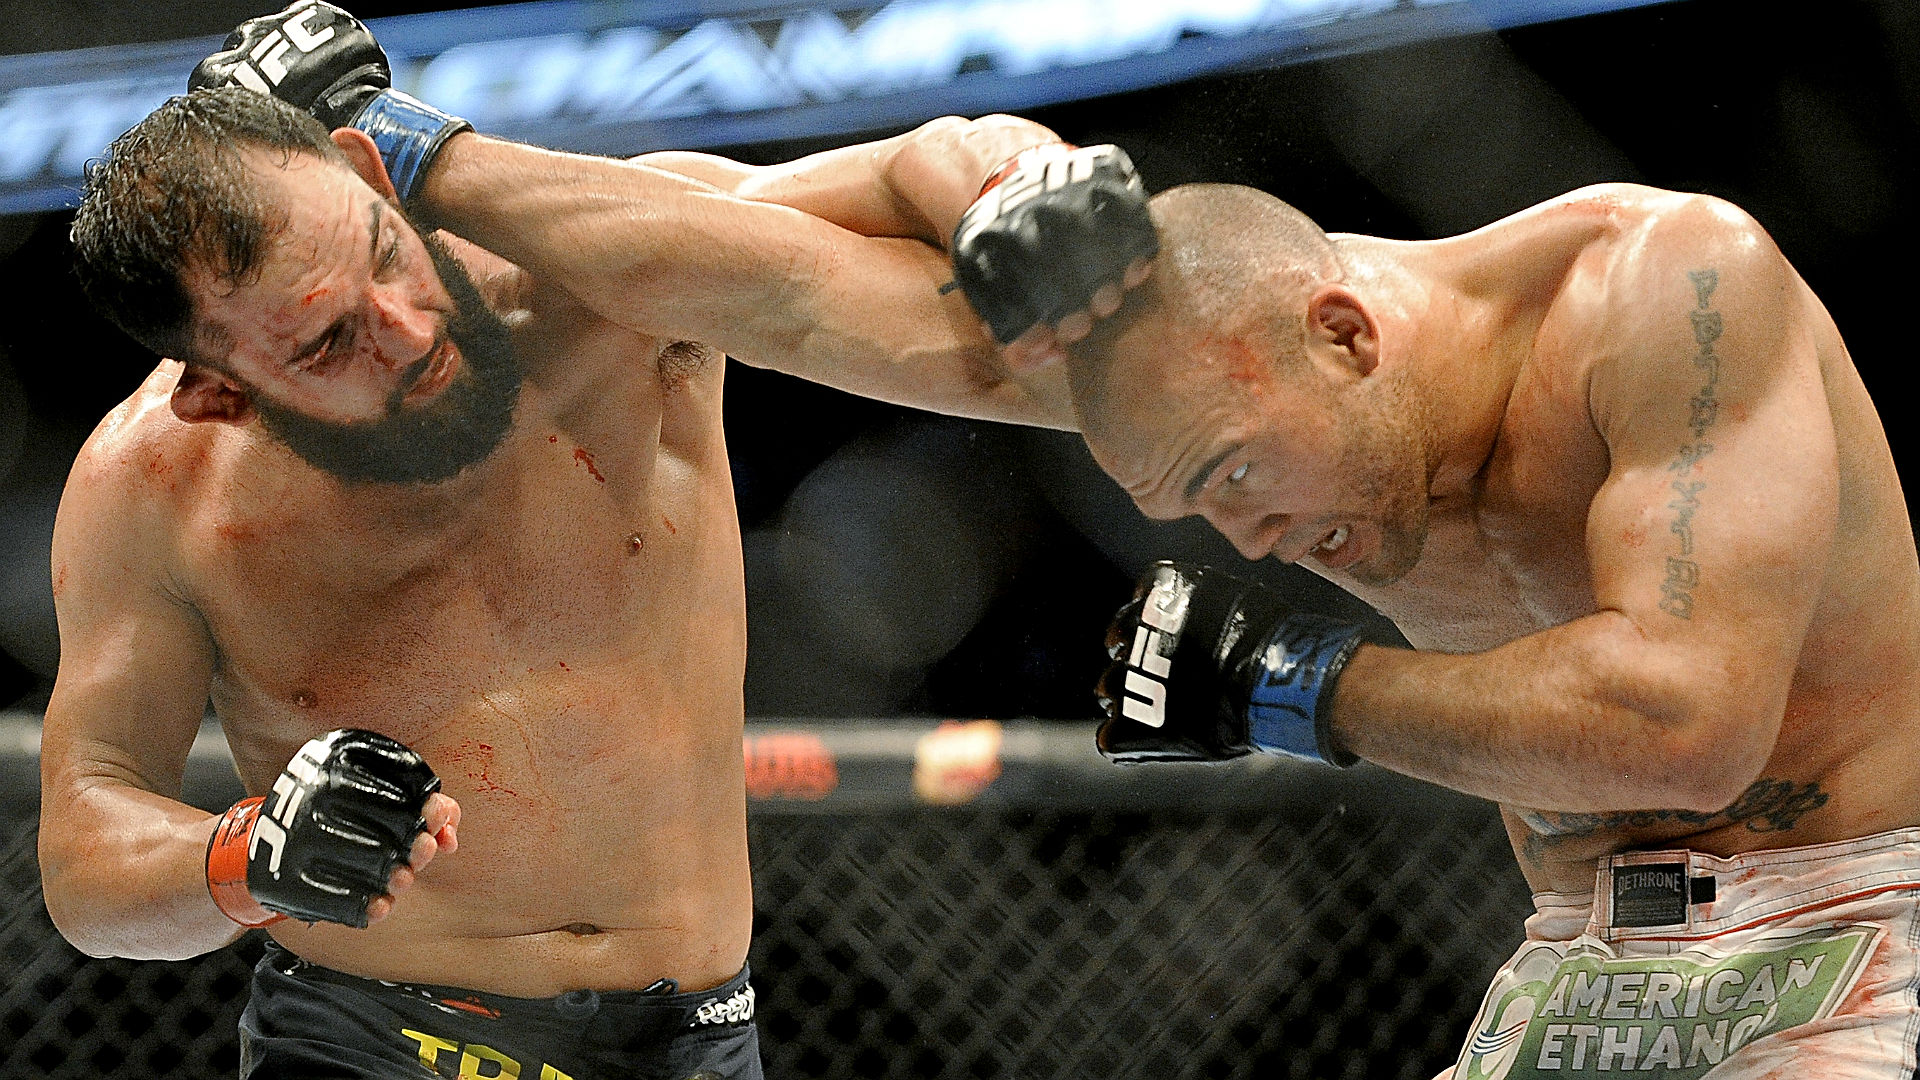 UFC 181 odds and picks – Hendricks favored over Lawler at rematch in Las Vegas